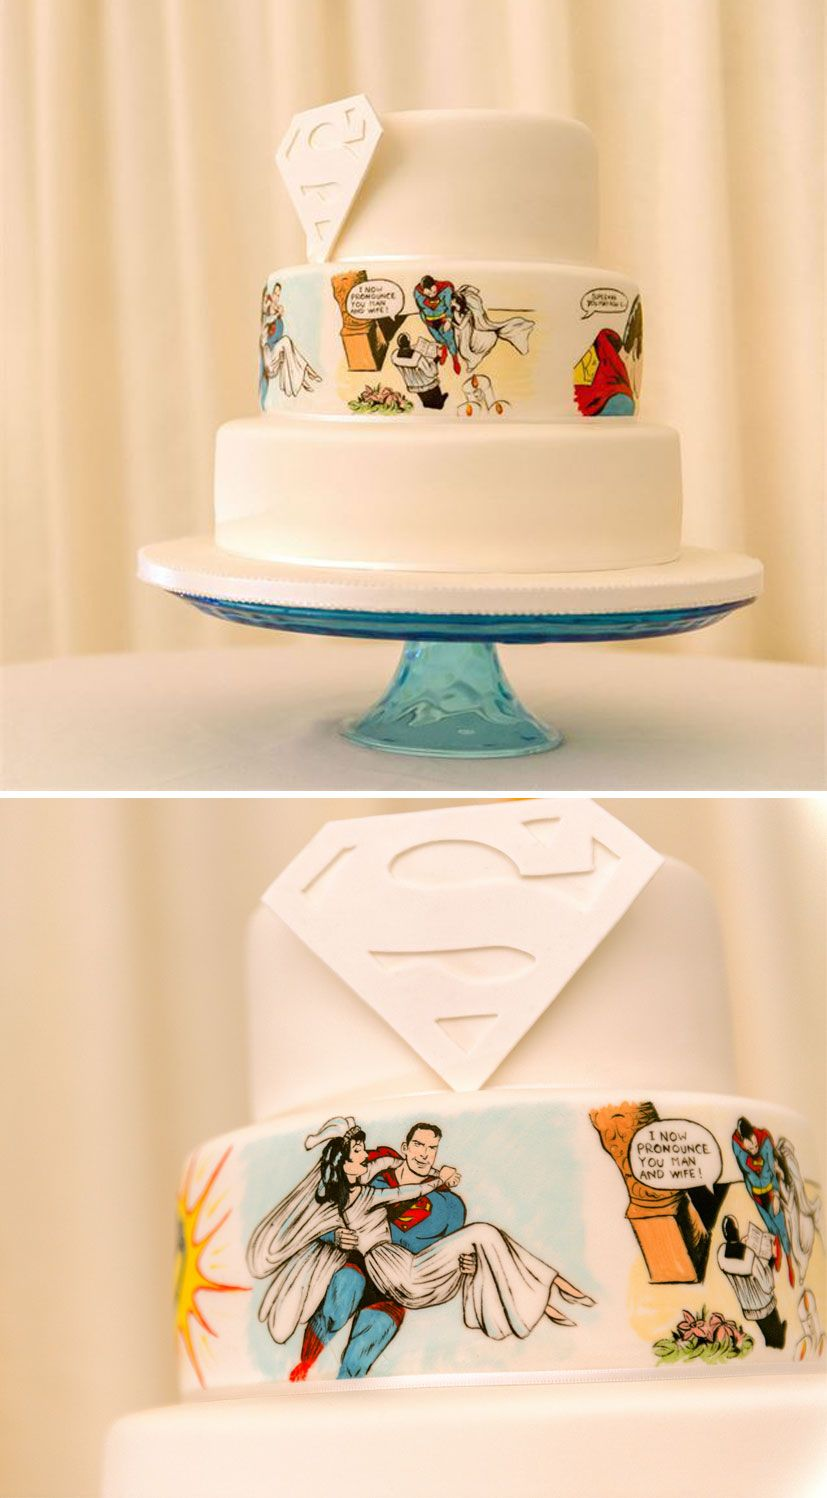 Superhero Wedding Cakes That Will Make Your Day Totally Epic Leeah